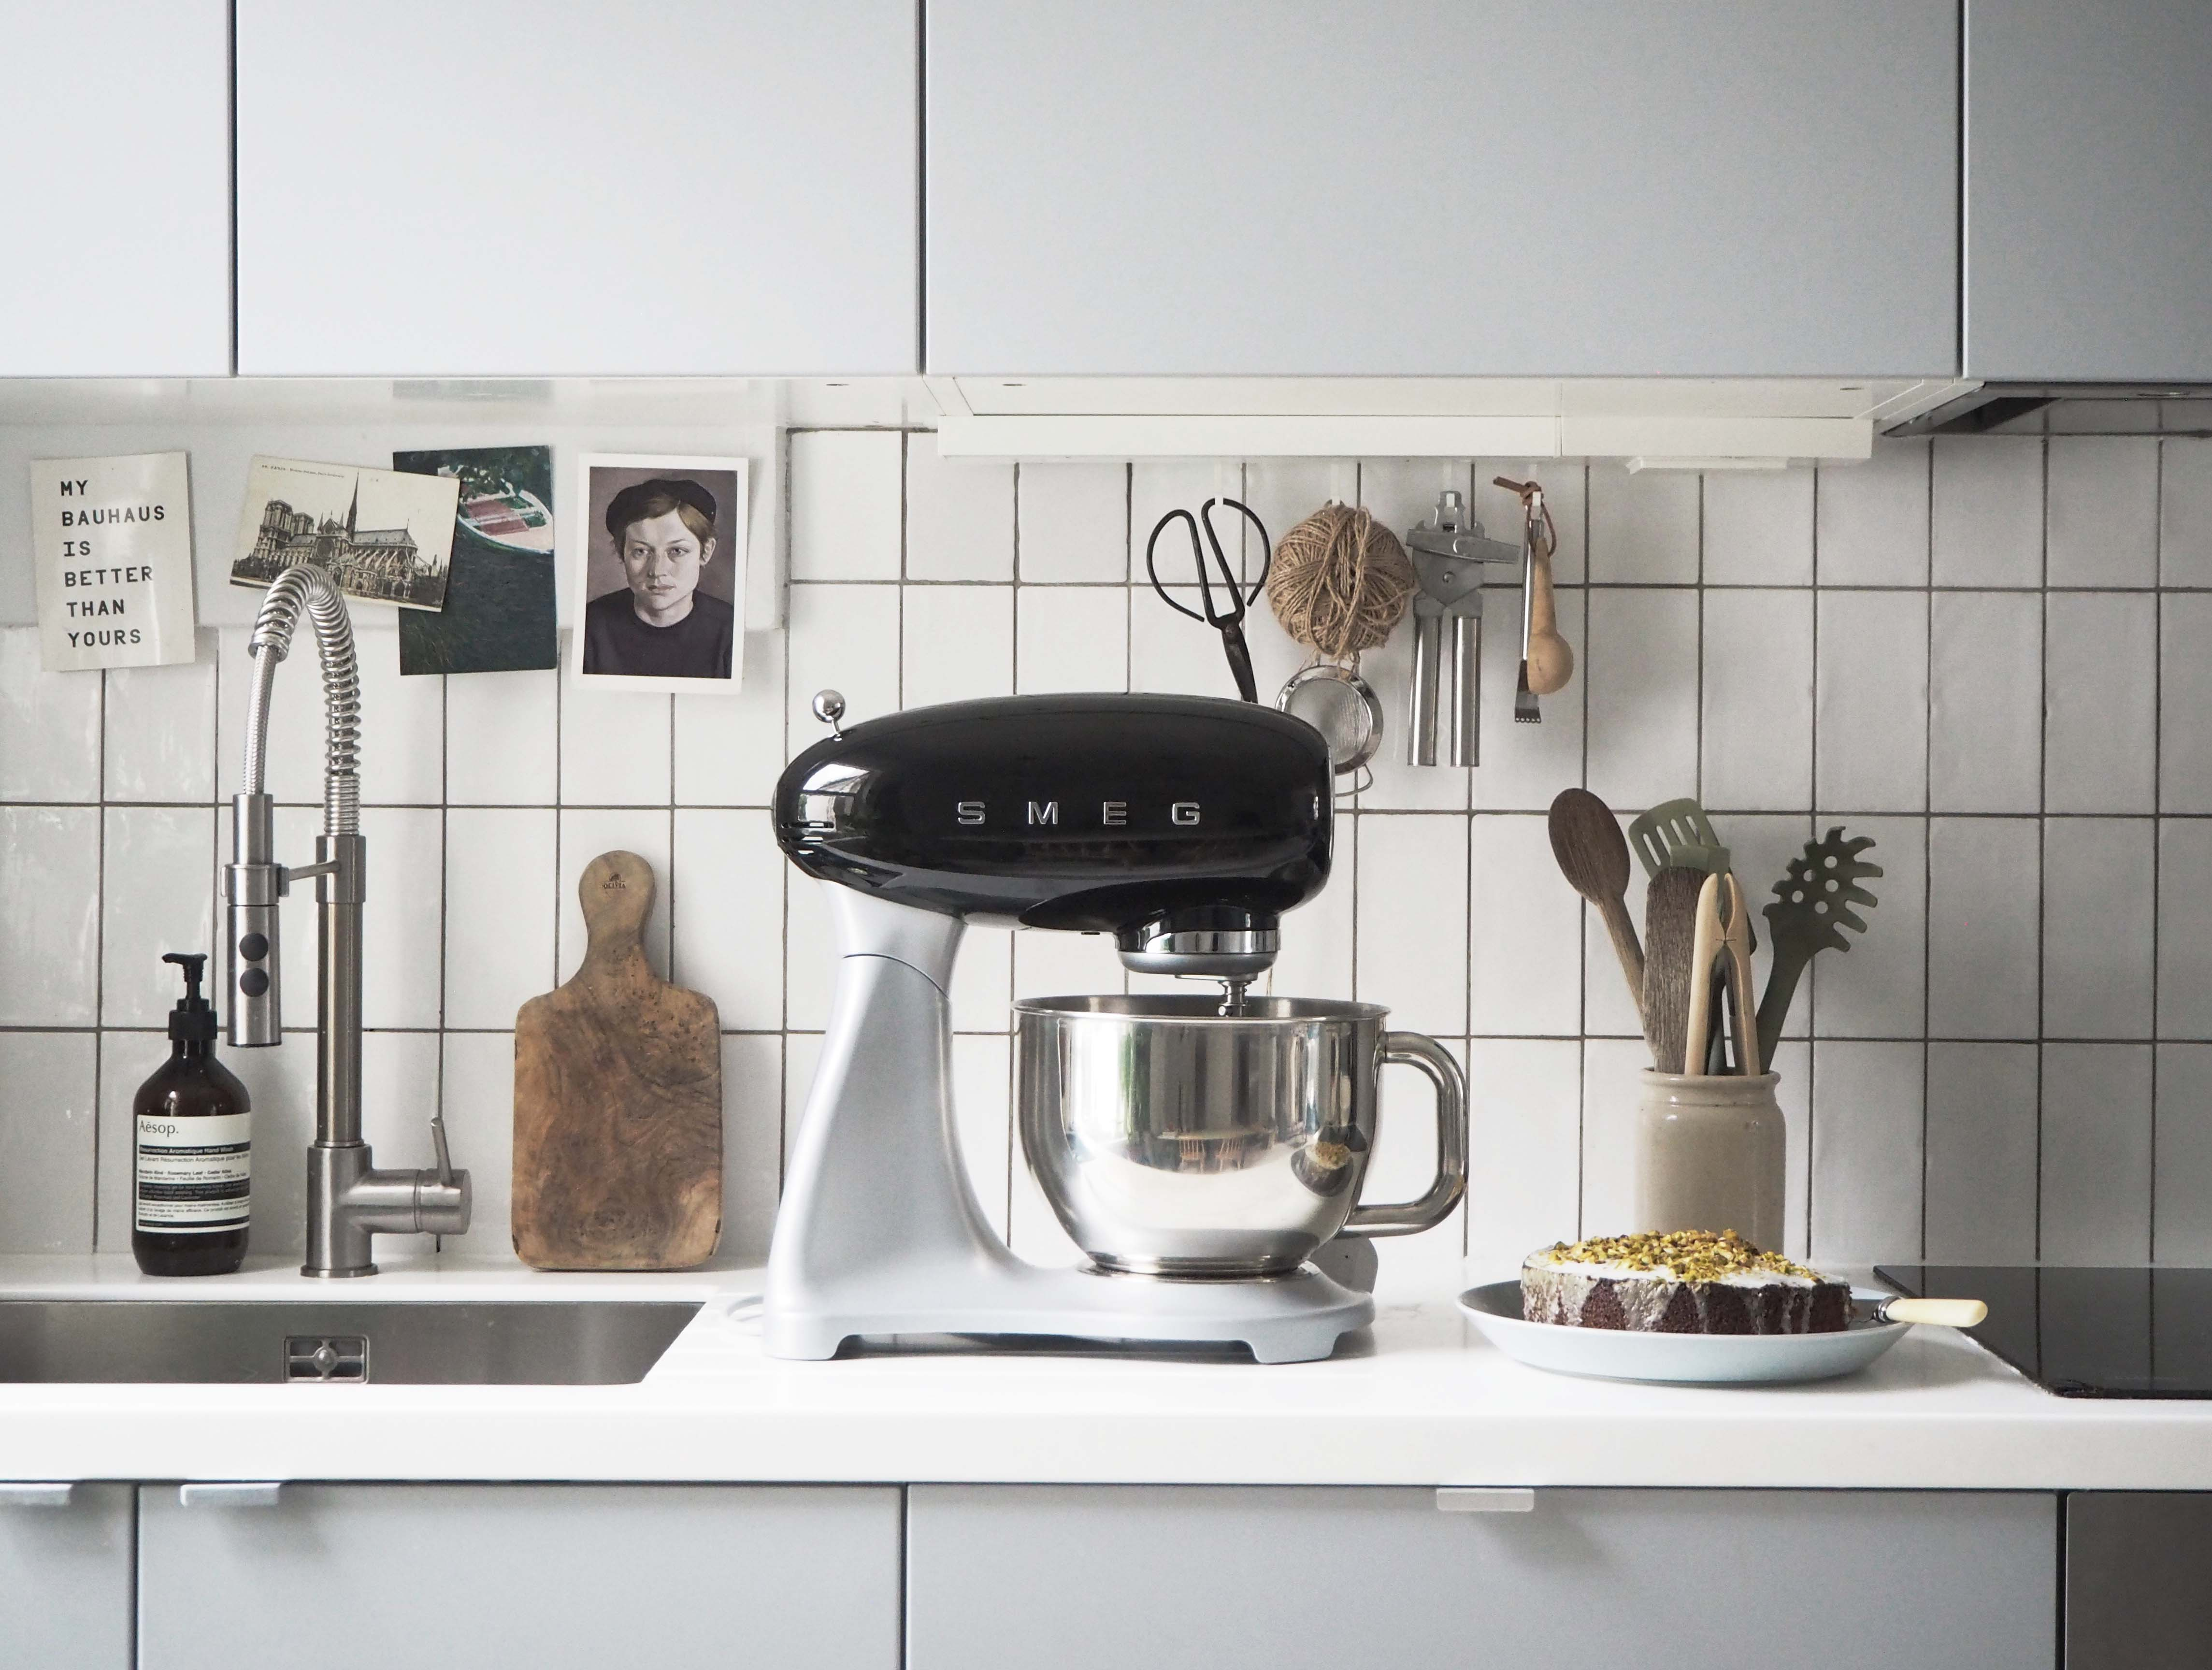 Simple Kitchen Essentials: Smeg Stand Mixer Review   Catesthill.com